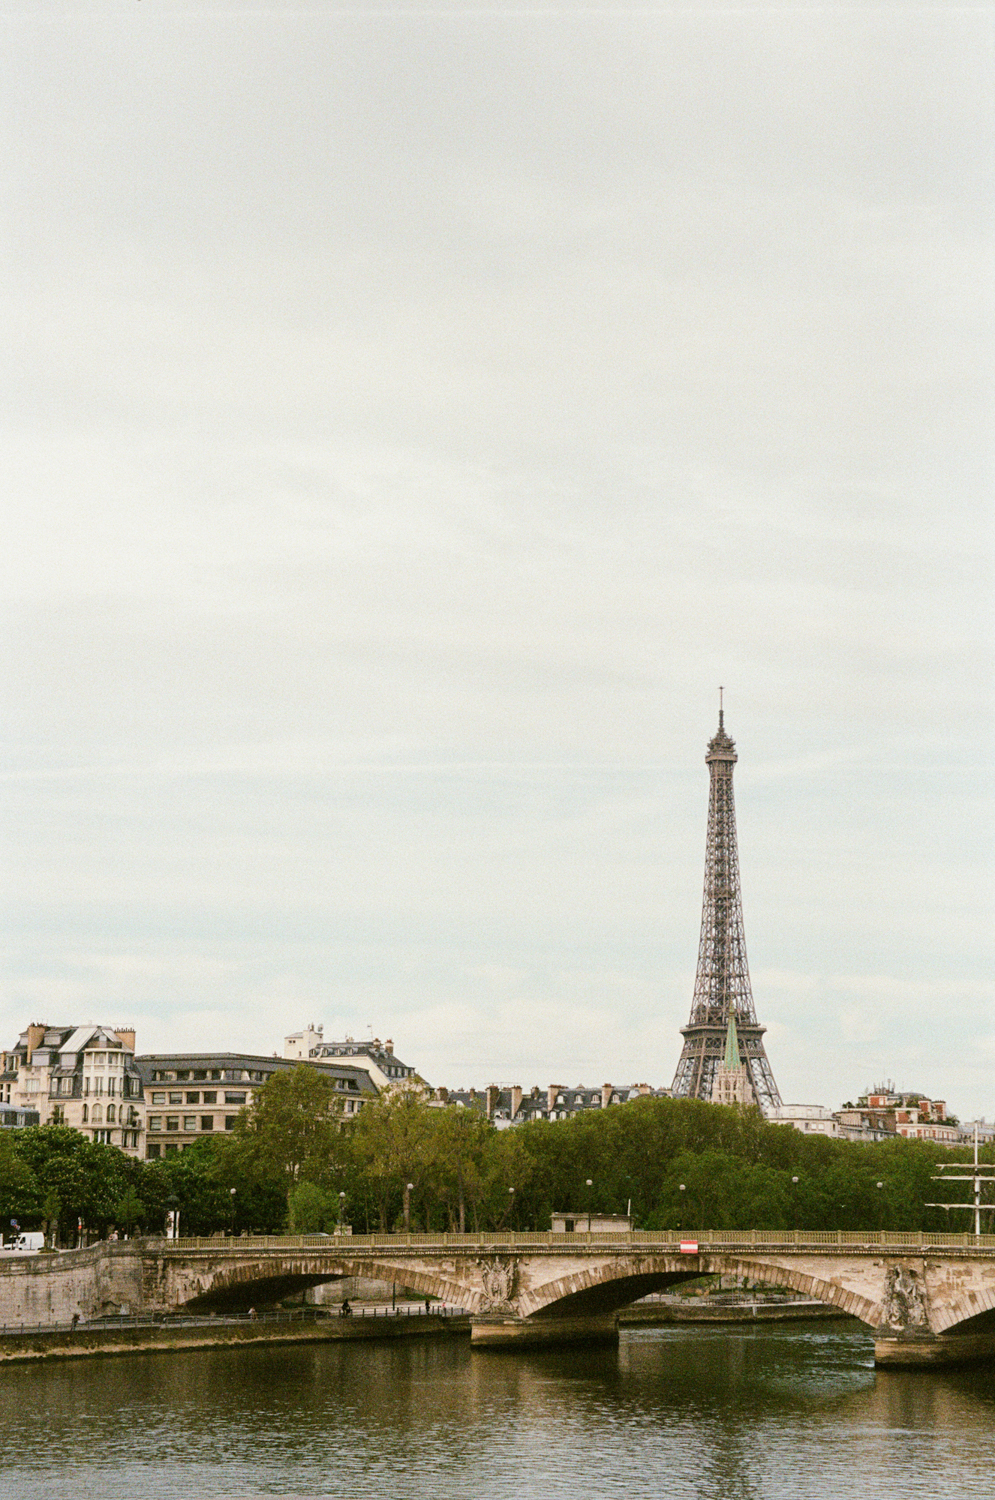 Eiffel Tower from across the River Seine